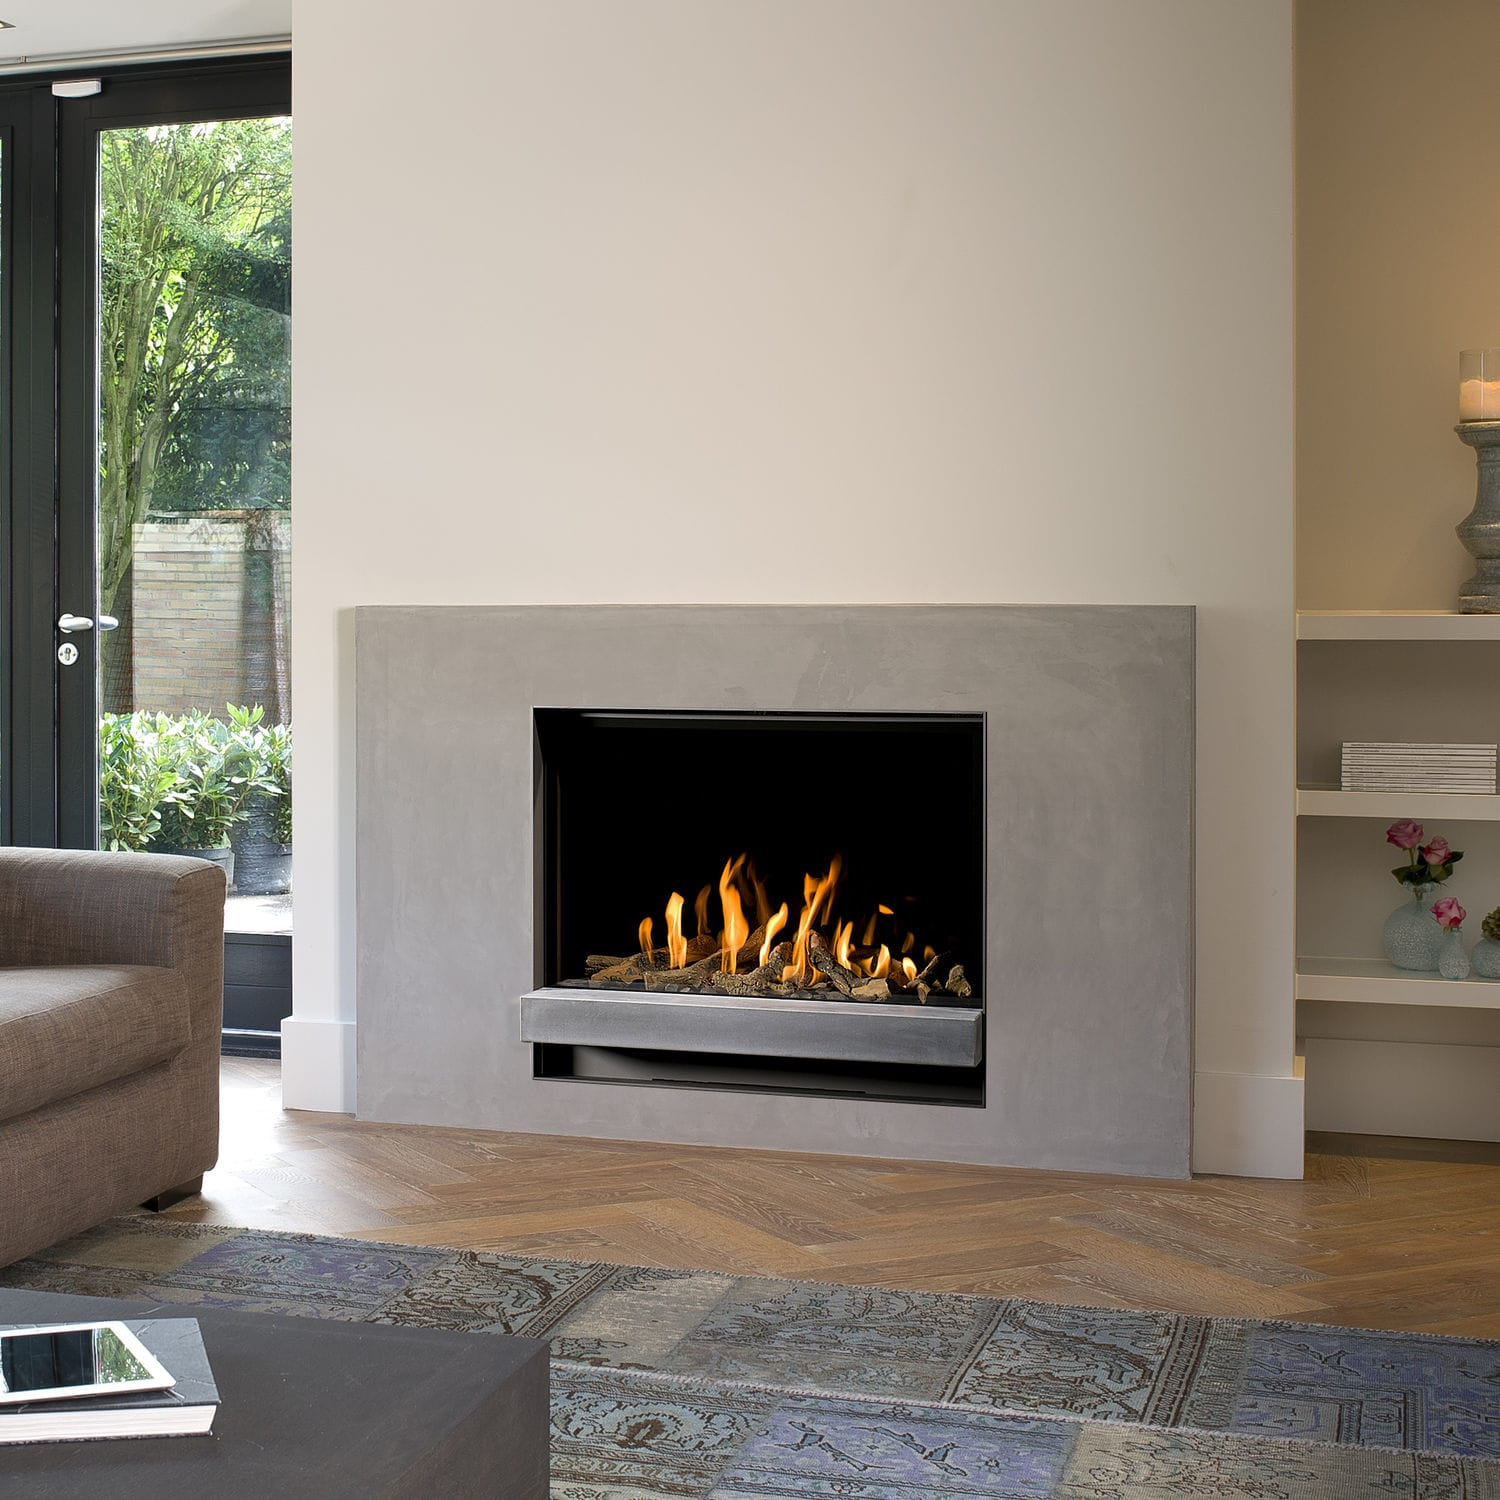 Discover all the information about the product Gas fireplace / contemporary / closed hearth / built-in ORIGINAL BELL: YORK 3 - Bellfires and find where you can buy it. Contact the manufacturer directly to receive a quote.